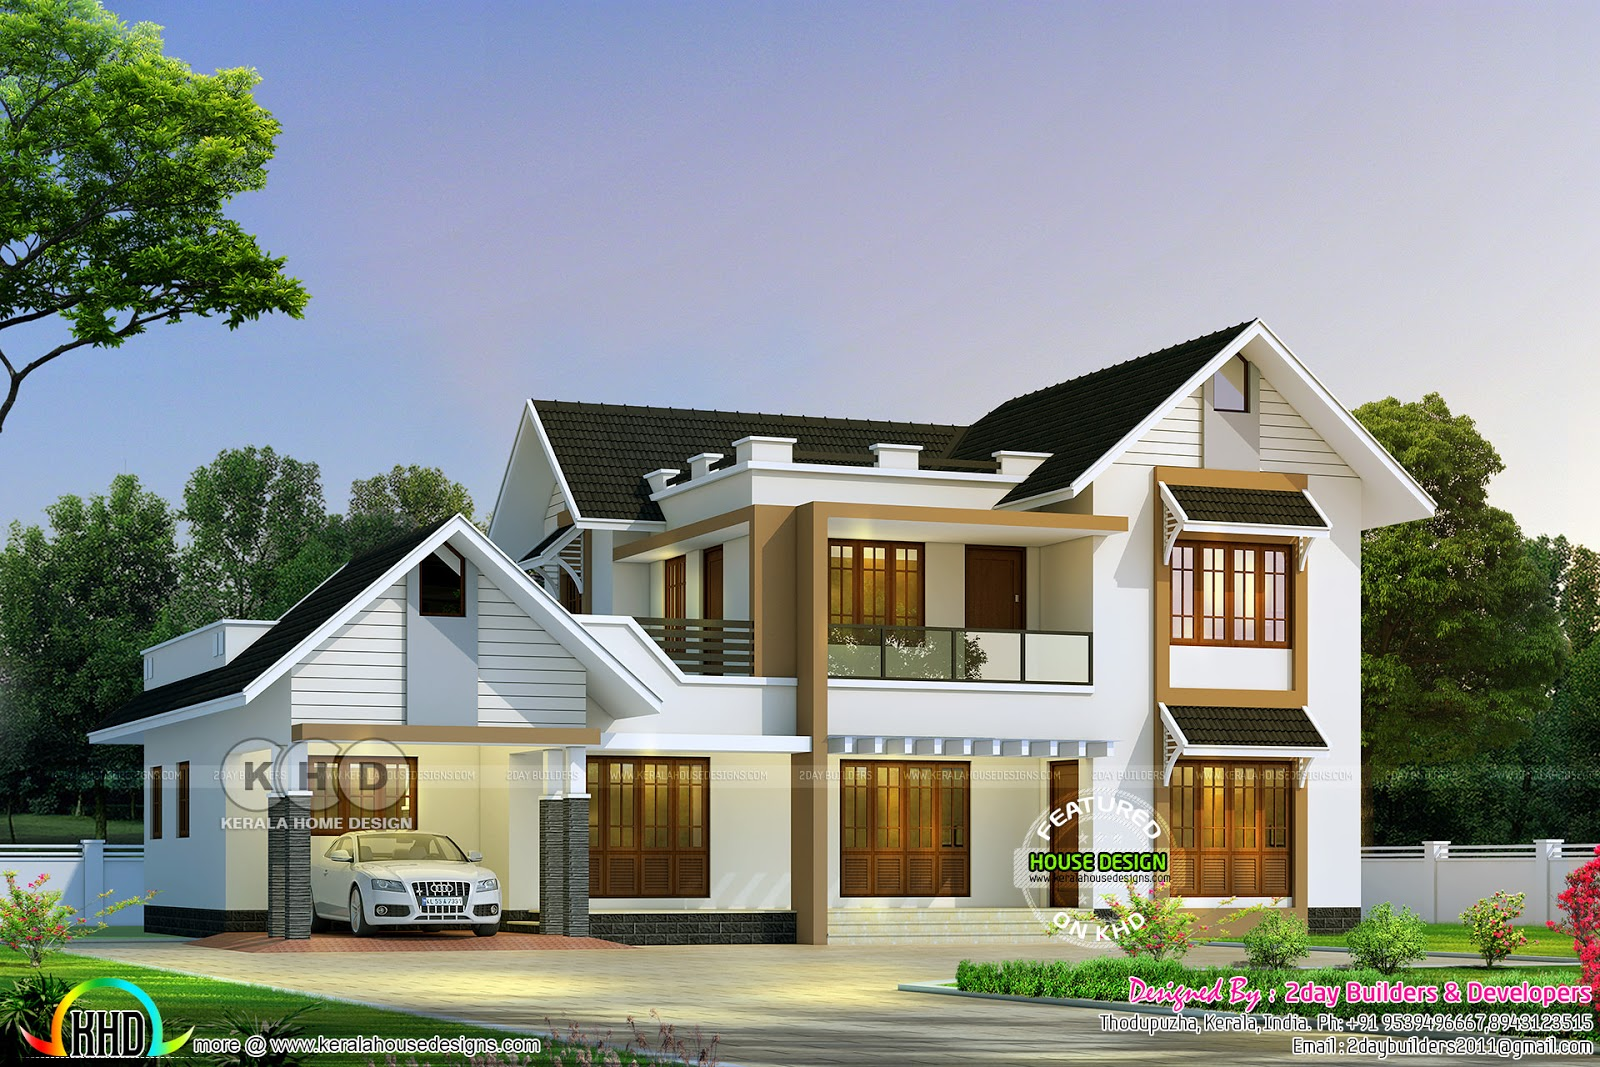 2017 kerala home design and floor plans for Kerala style home